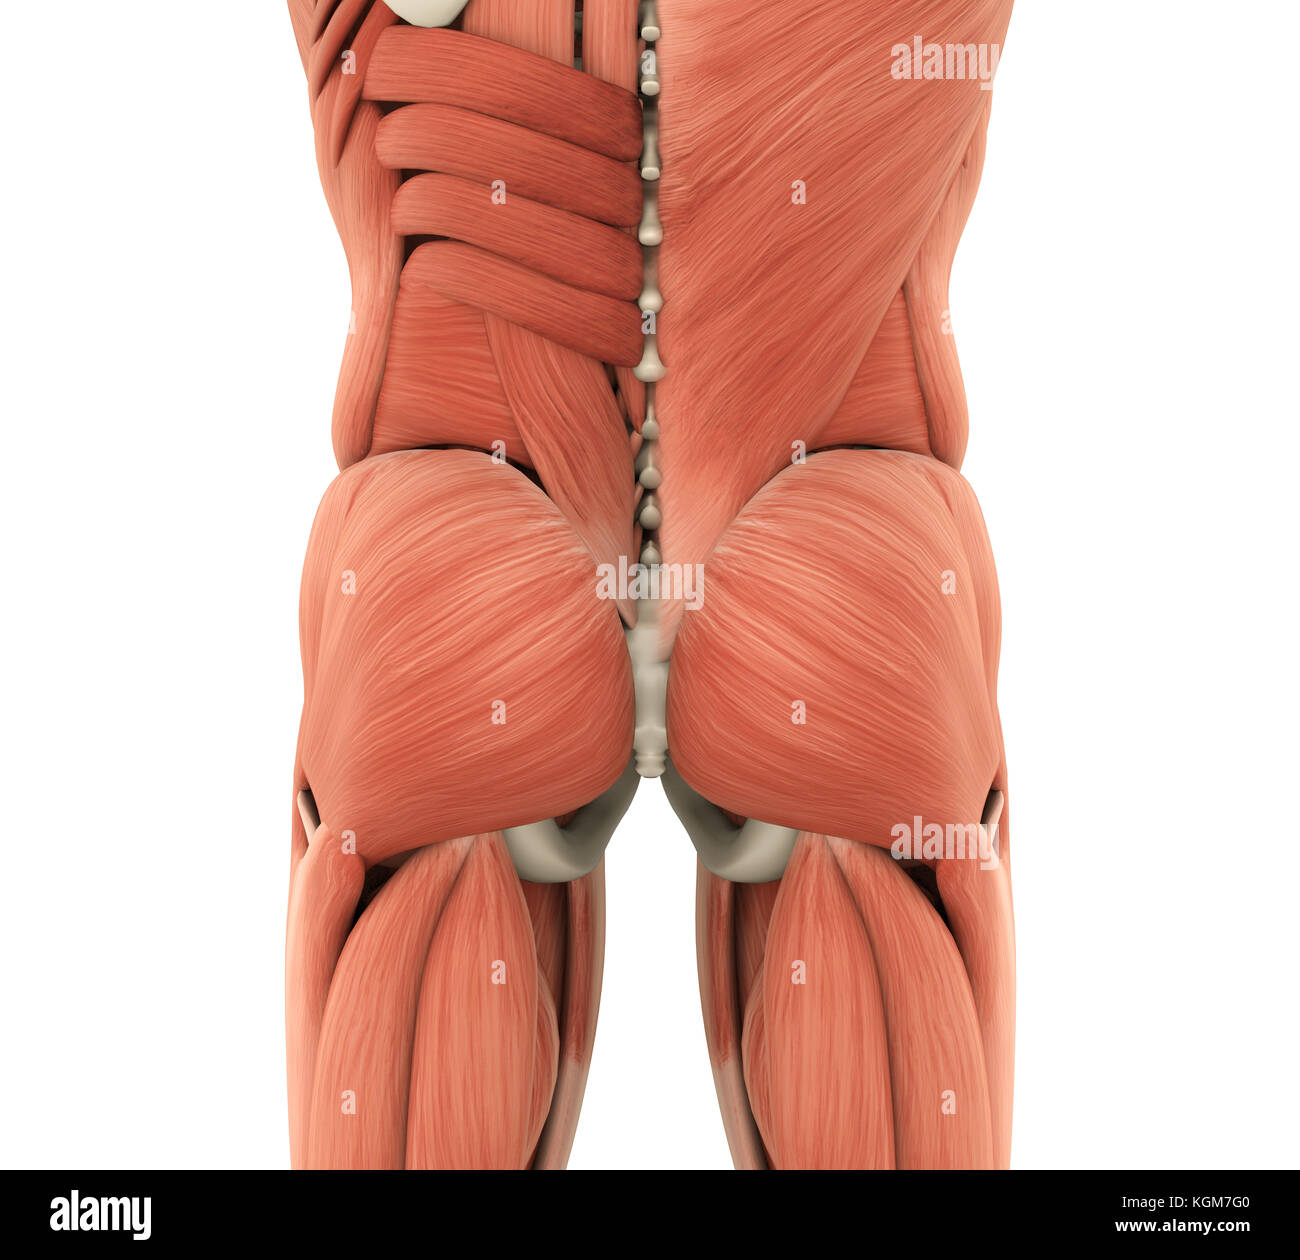 Thigh Adductor Muscles Stock Photos Thigh Adductor Muscles Stock